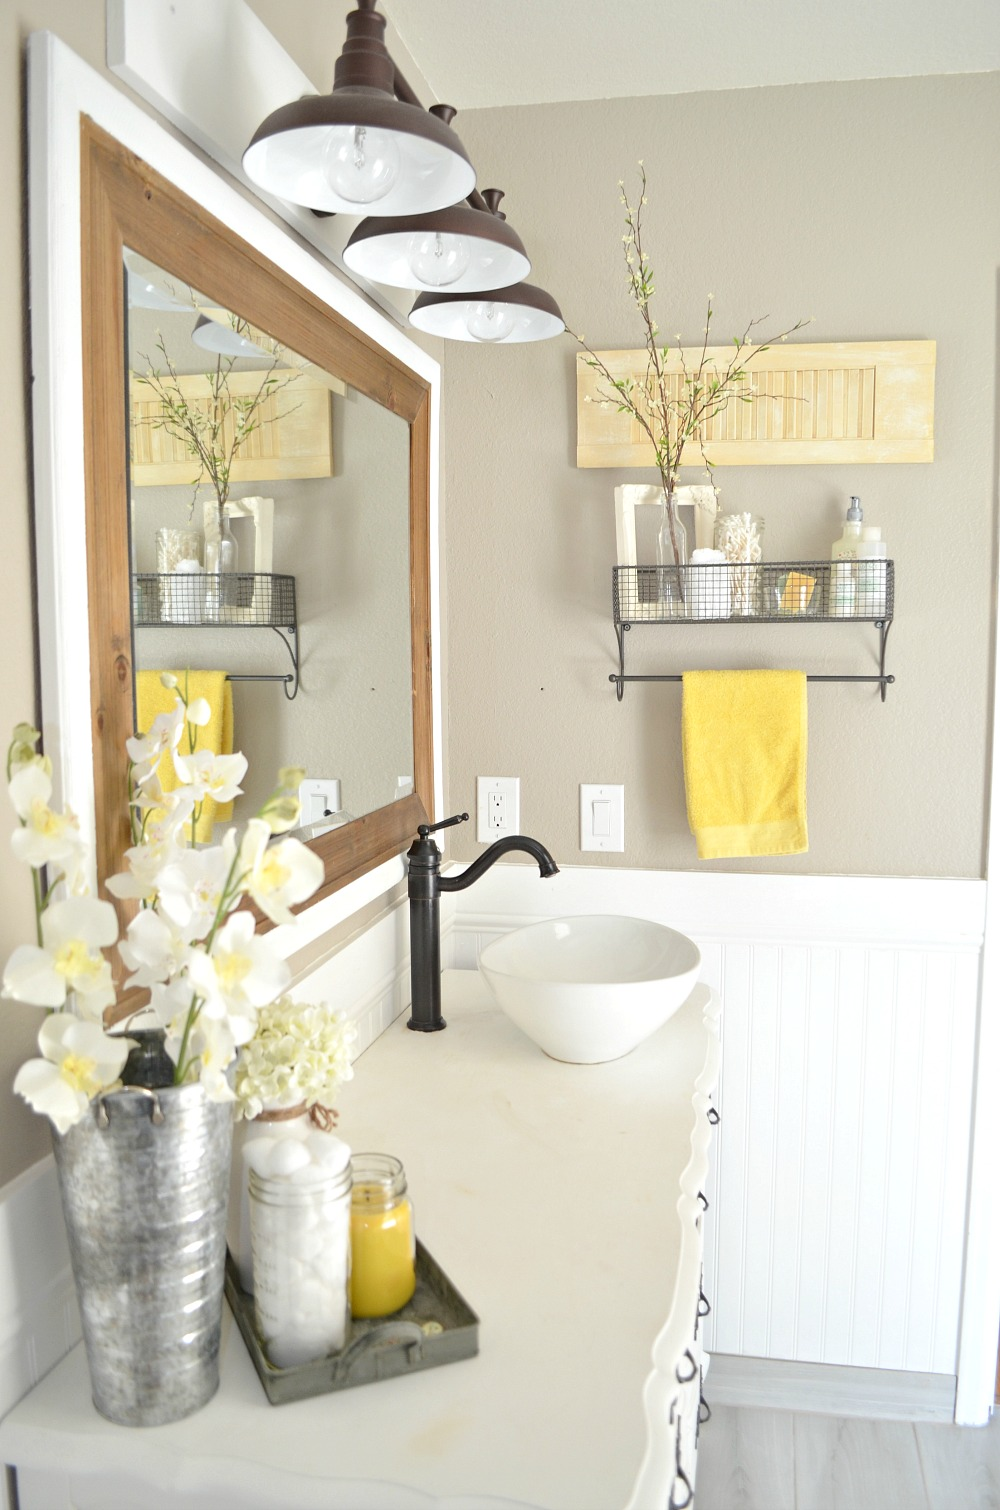 How to easily mix vintage and modern decor little for Best bathroom decor ideas